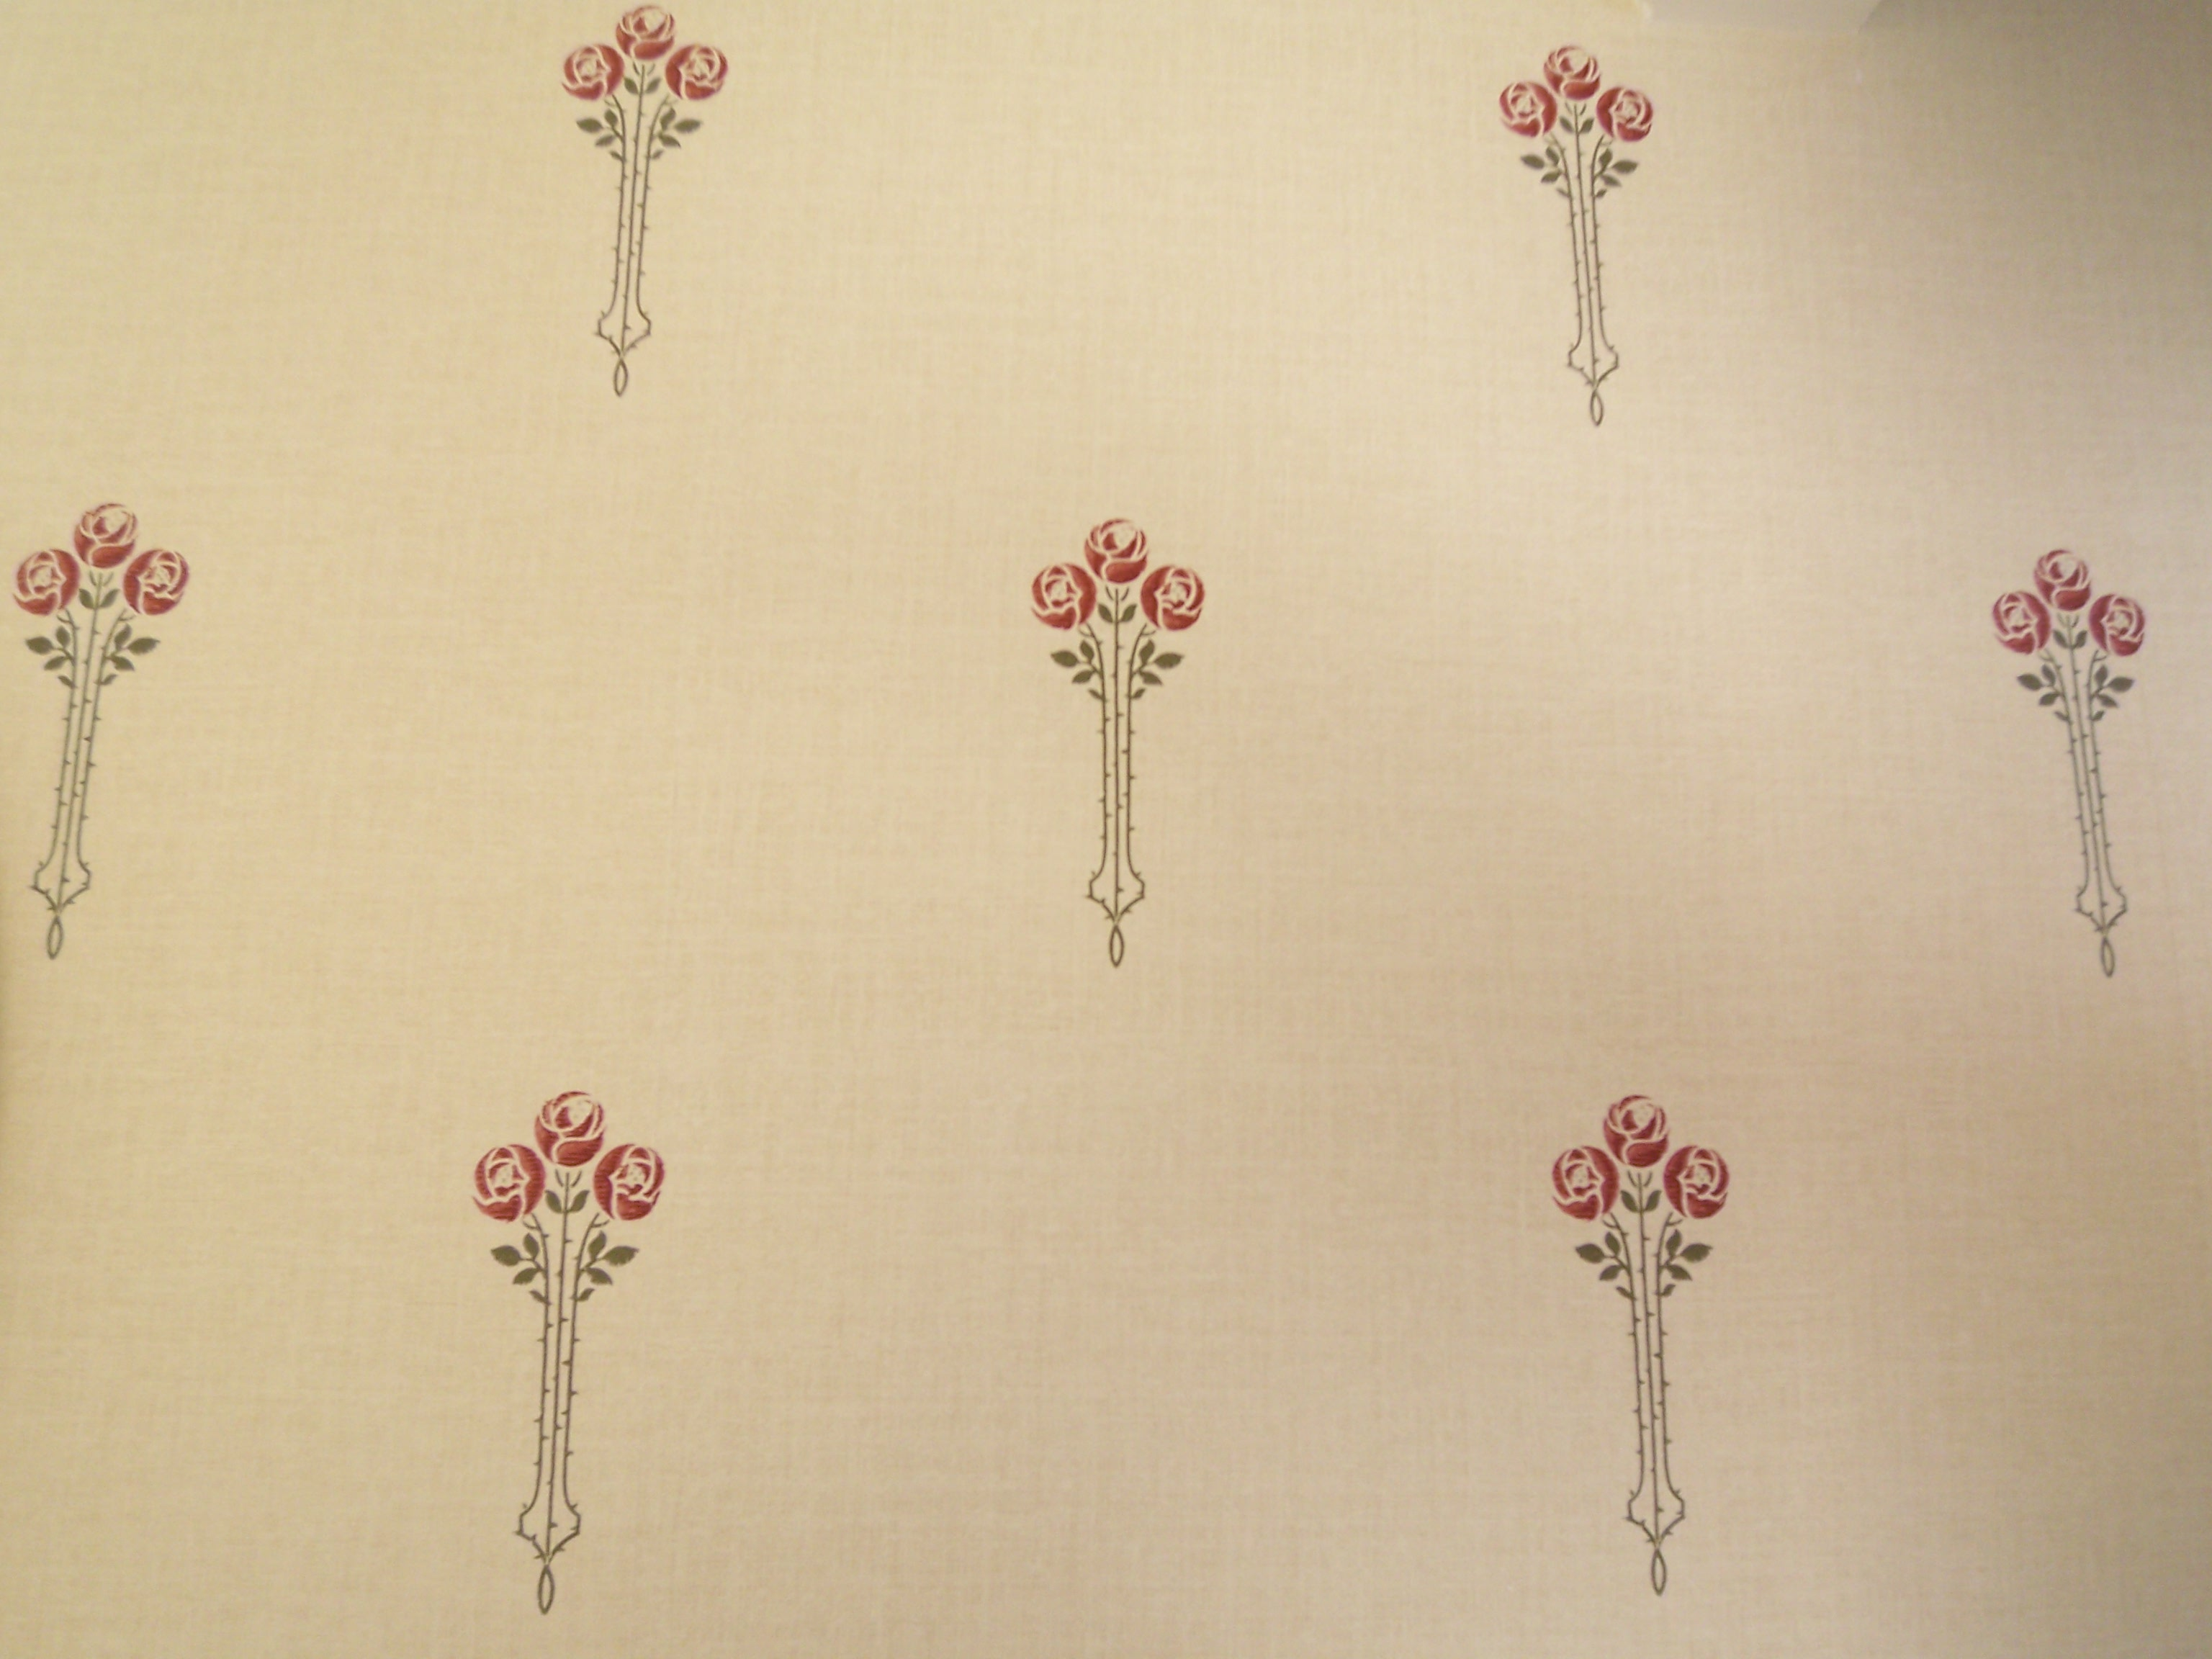 DETAIL ARTS AND CRAFTS REPRODUCTION WALLPAPER tHE dARD rOSE 3072x2304